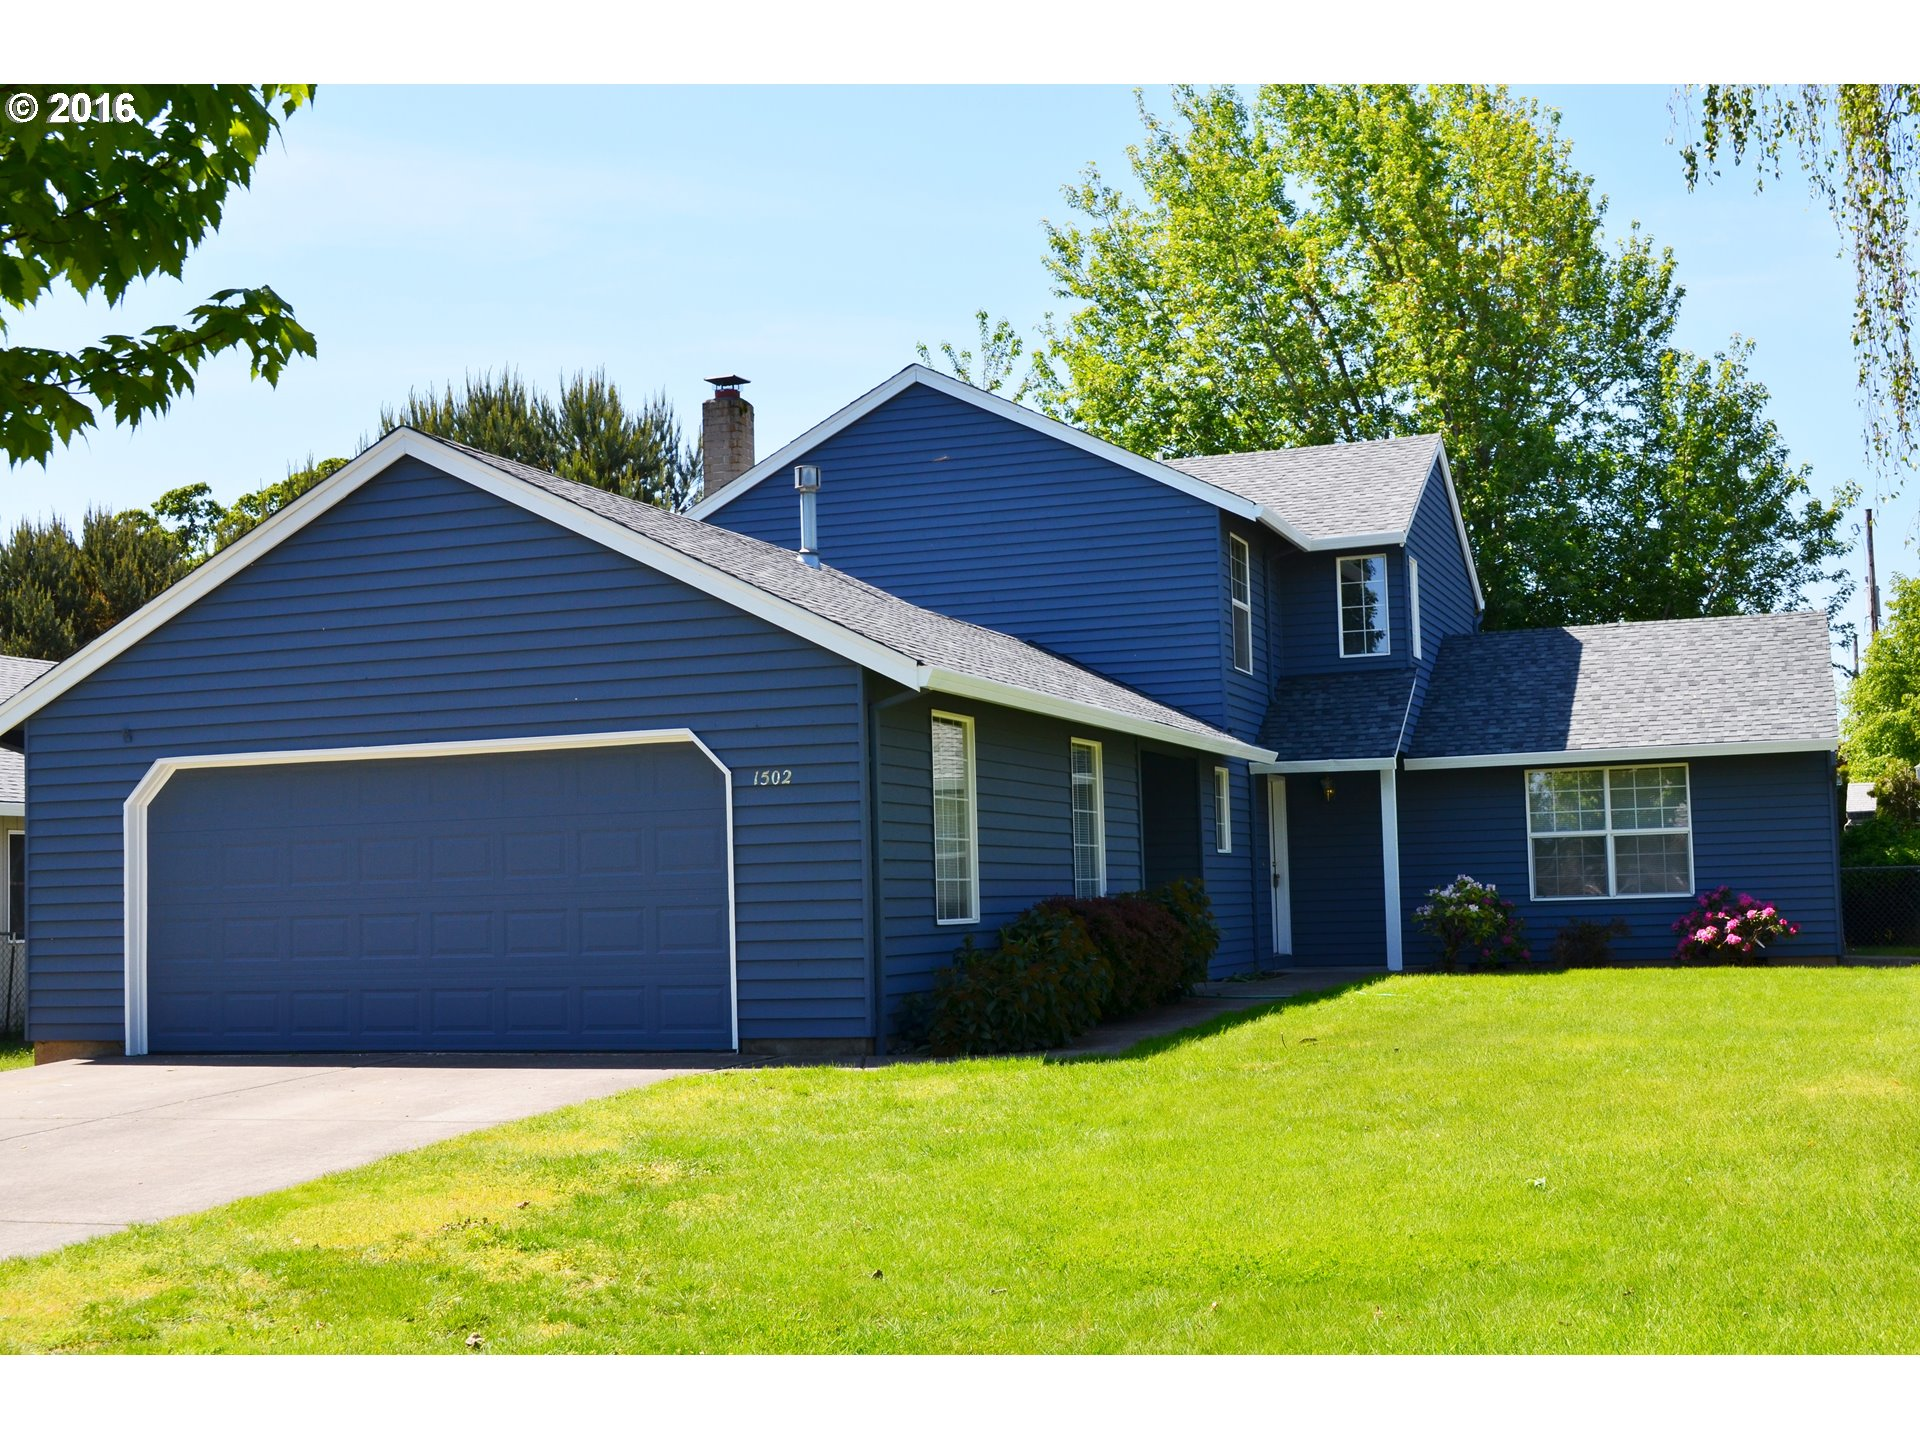 1502 Kingwood St, Forest Grove, OR